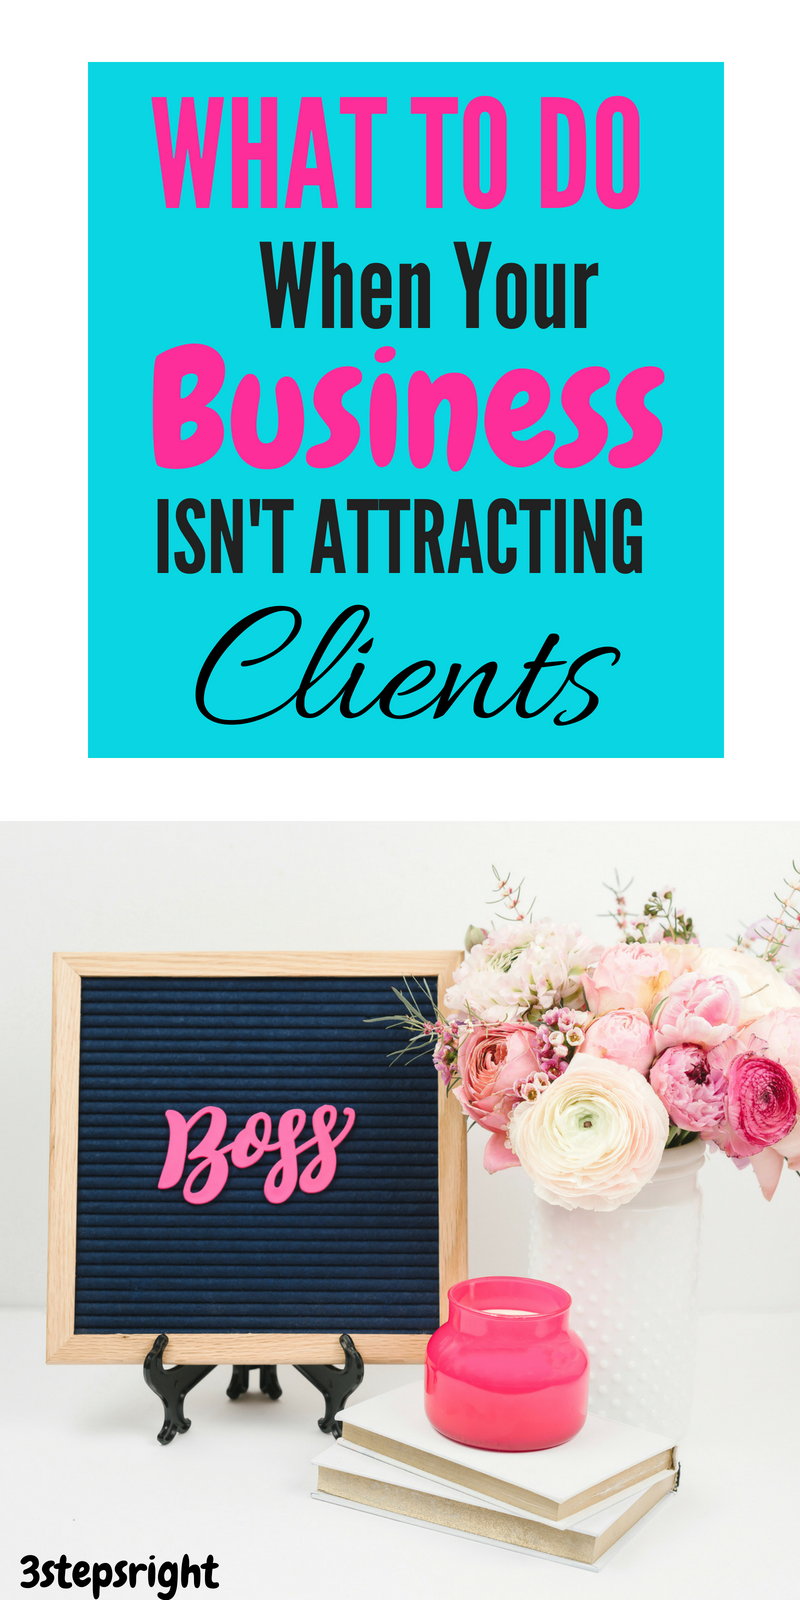 What to do when your business is not attracting clients.png